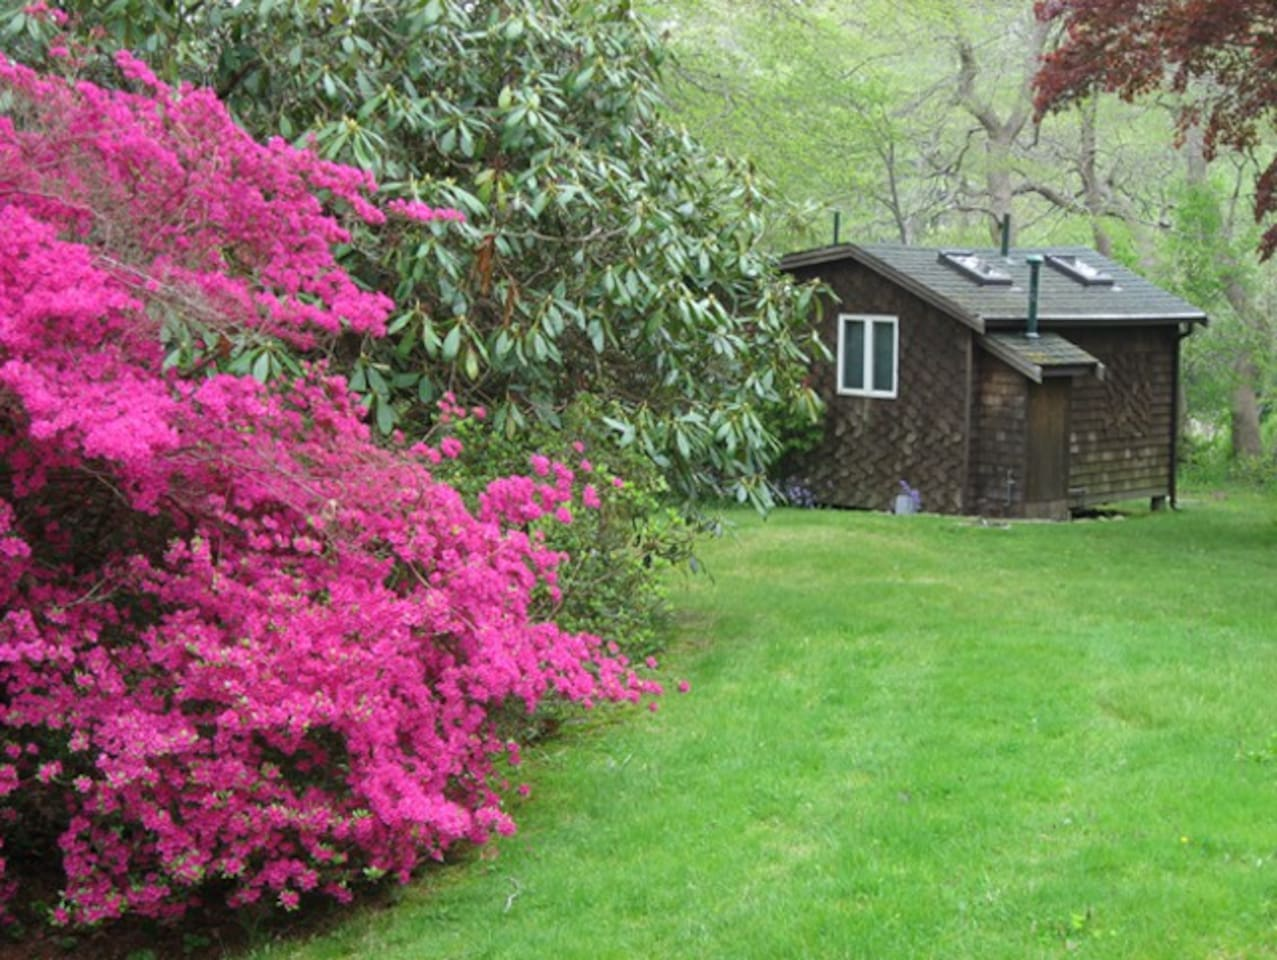 A view of the cottage as you walk down the lawn with azaleas in full bloom (May).